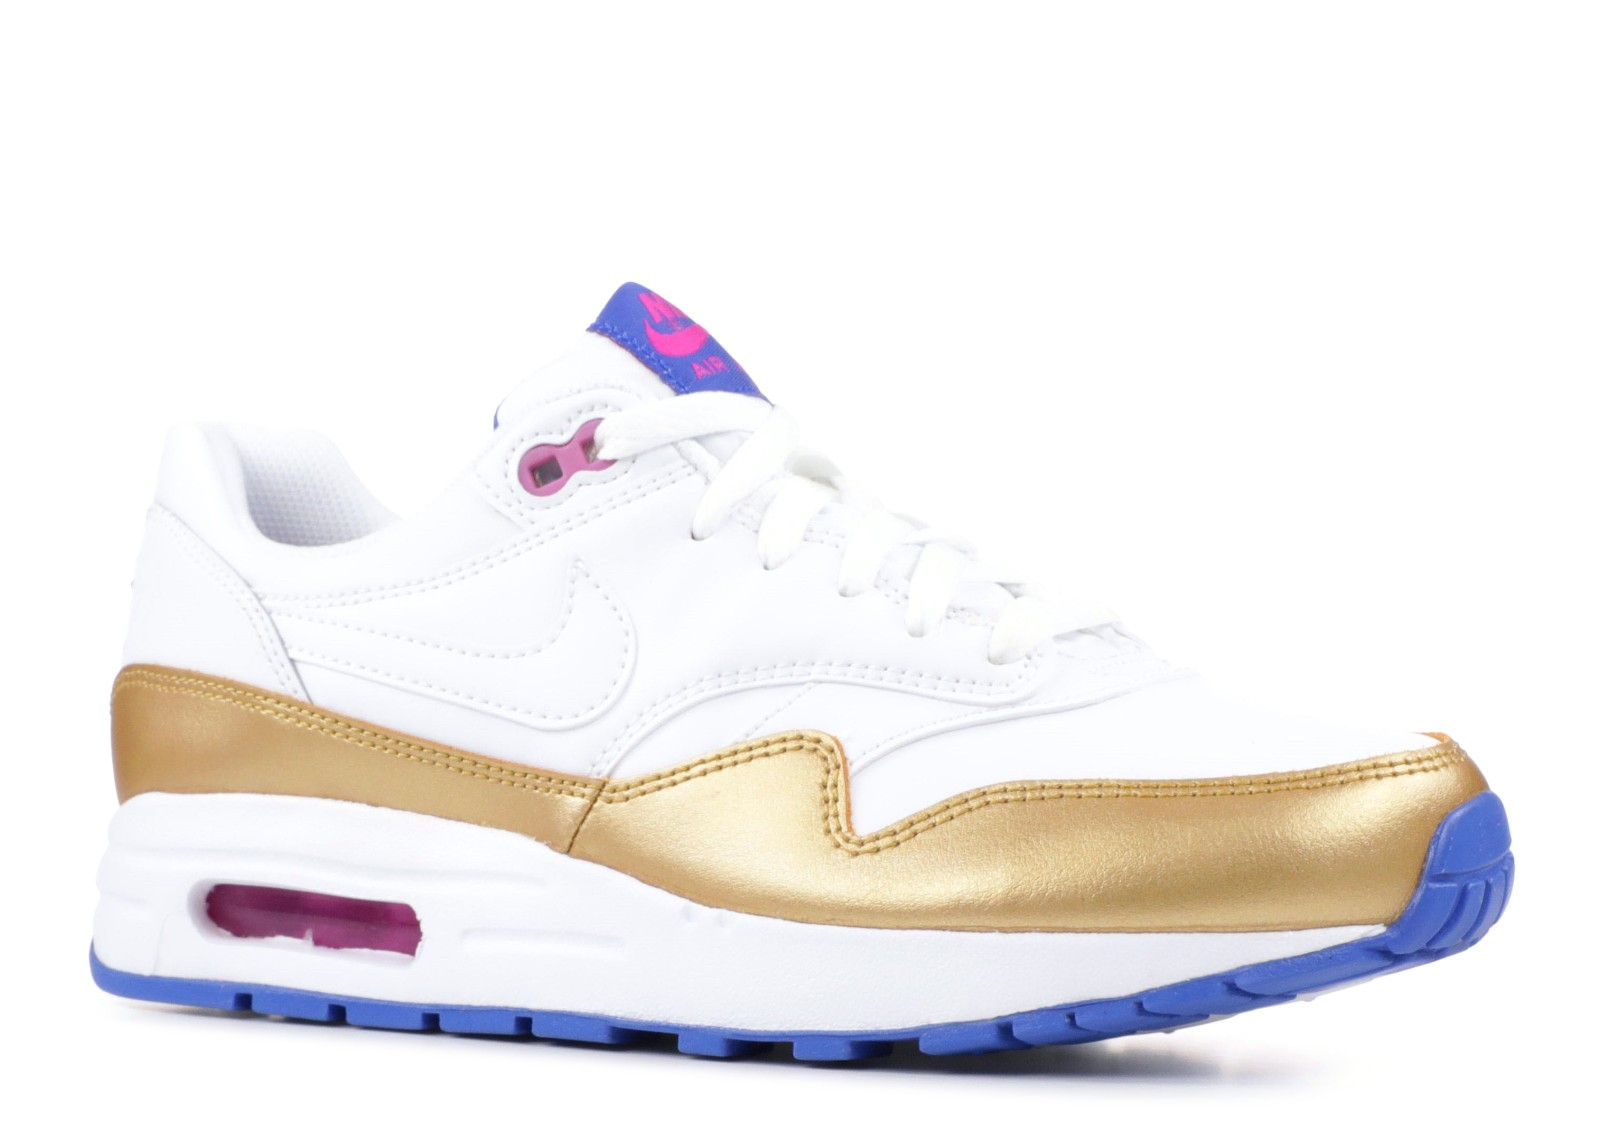 Estación de ferrocarril Escalofriante Londres  Nike Air Max 1 GS White Metallic Gold 807605-103 - Sepsport